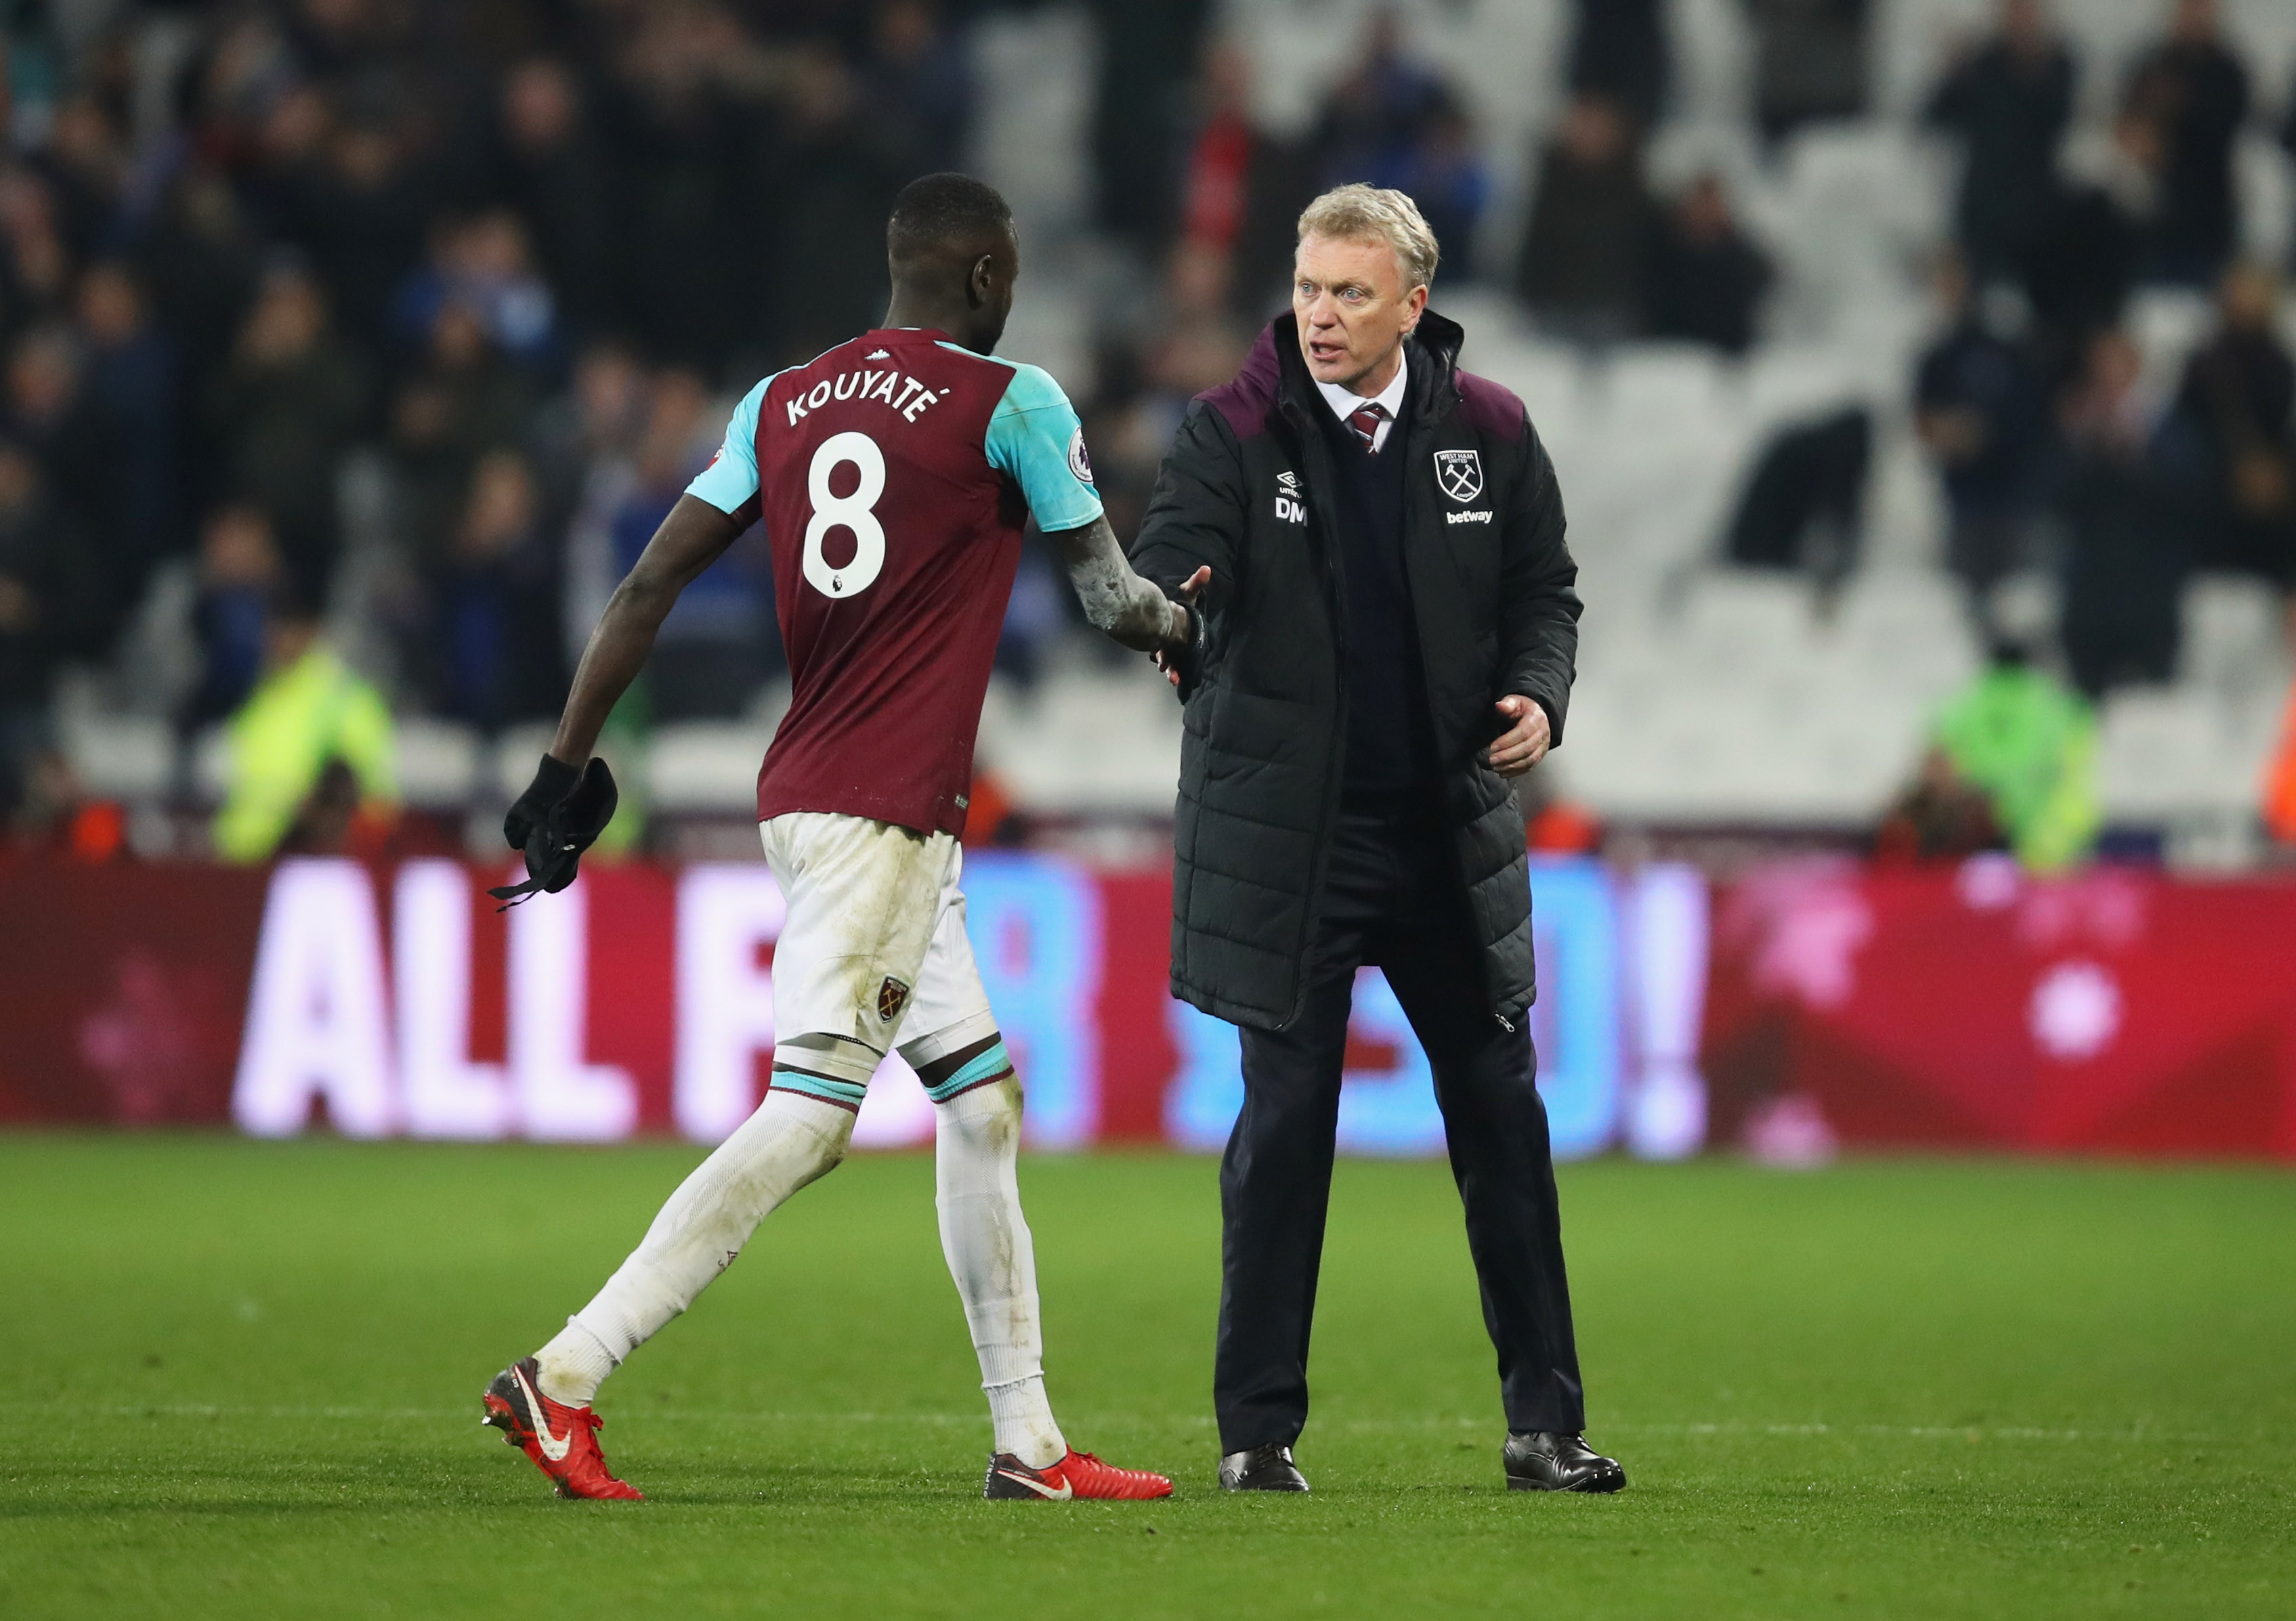 Newcastle end four-match losing streak with win at West Ham